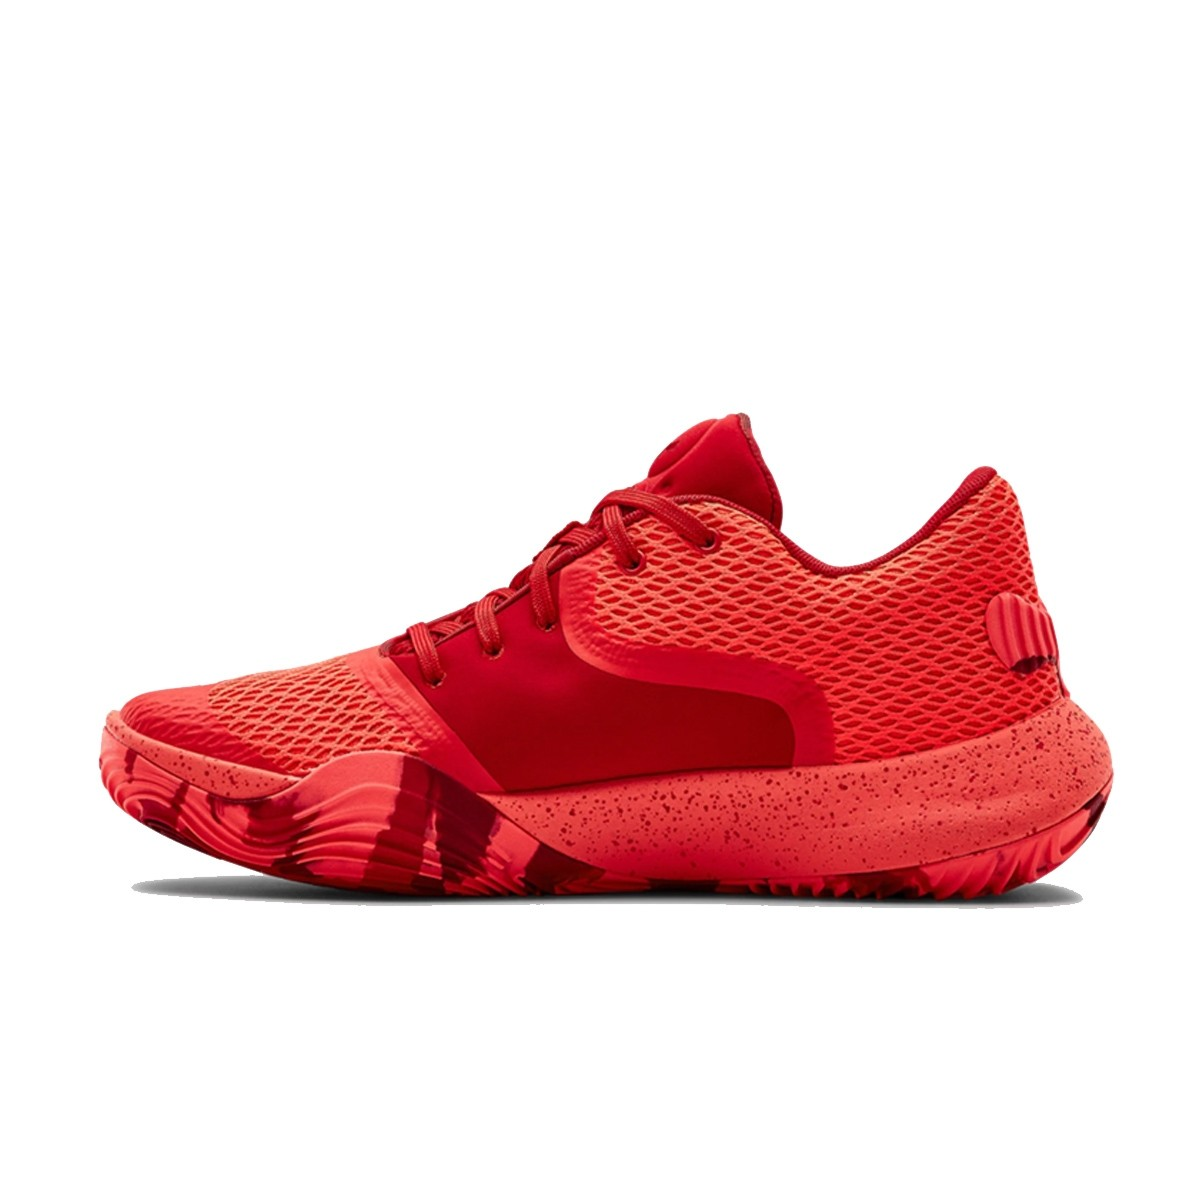 Under Armour Spawn Low II jr 'Flash Crimson'-3022626-602-jr